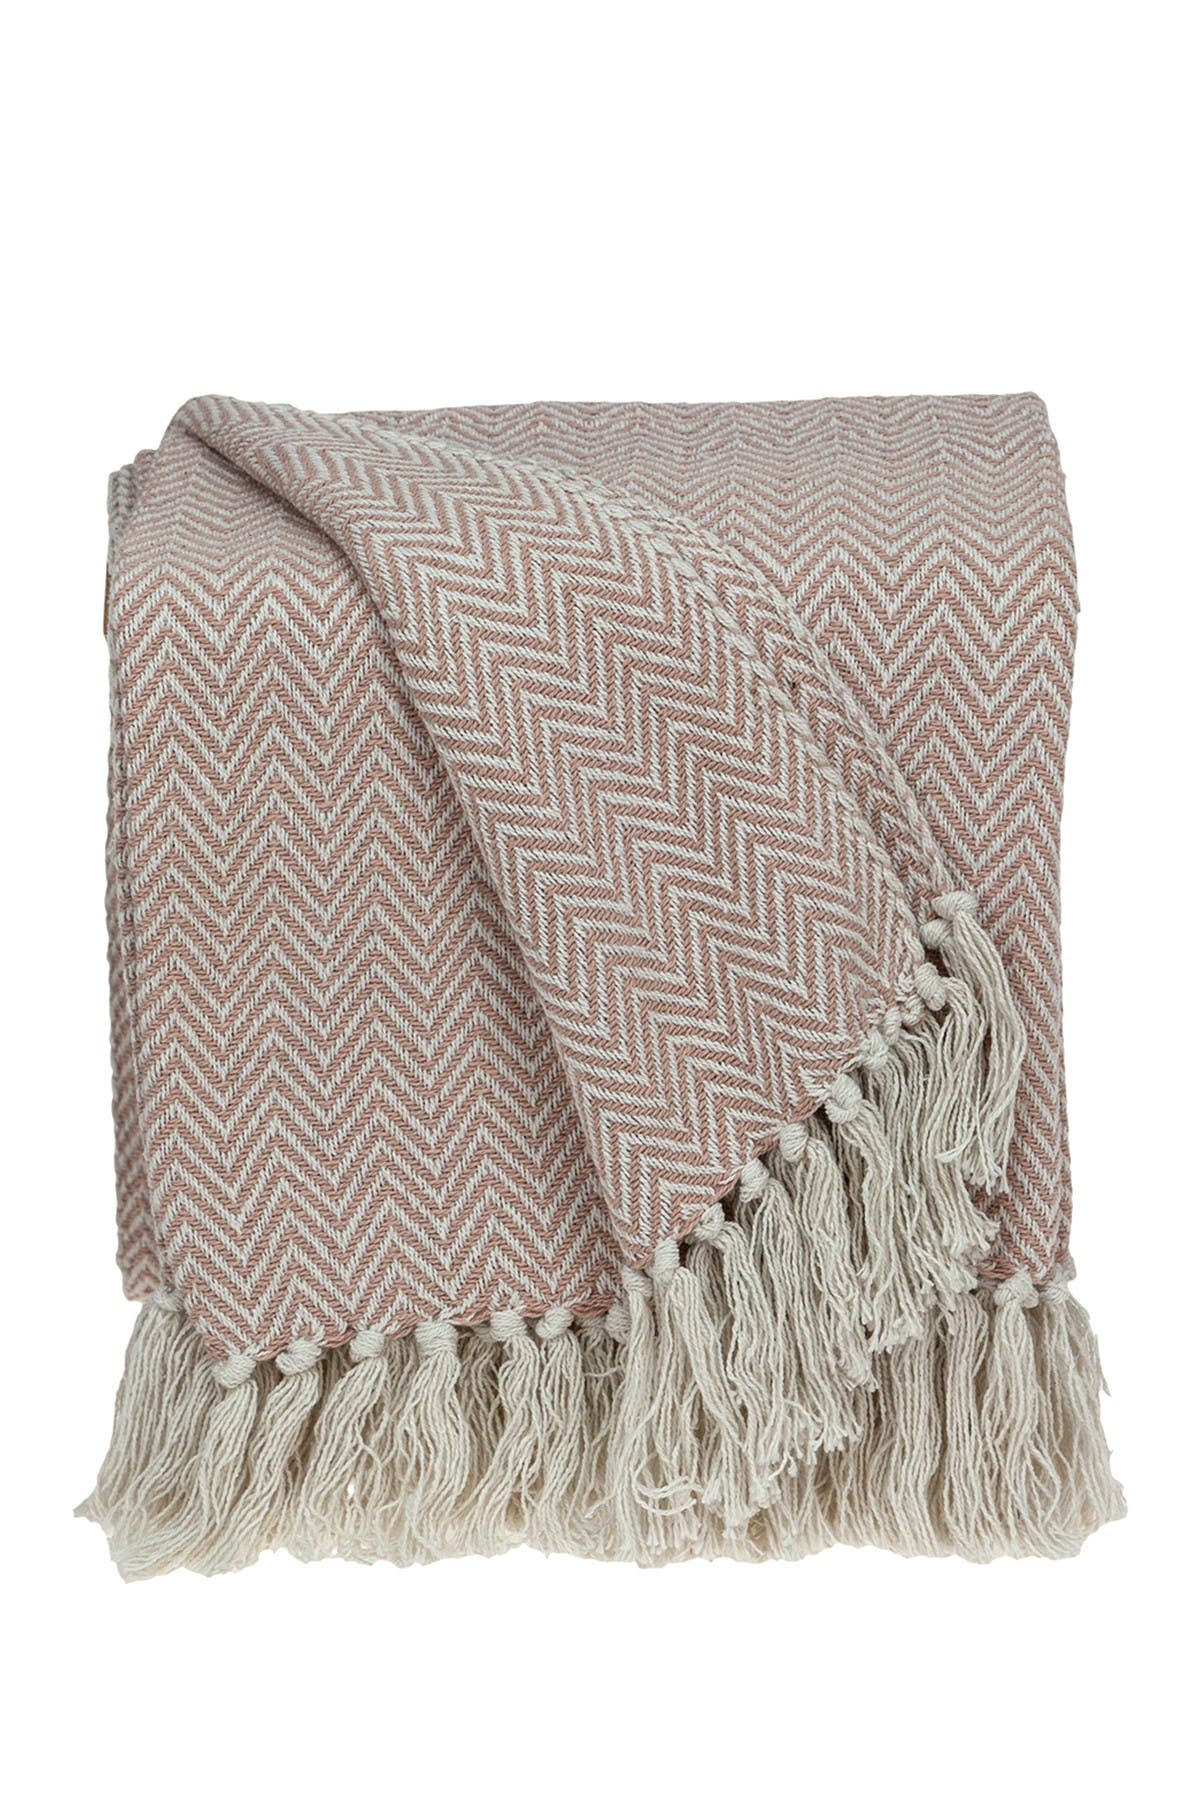 "Image of Parkland Collection Isla Transitional Pink 80"" x 97"" Woven Handloom Throw Blanket"